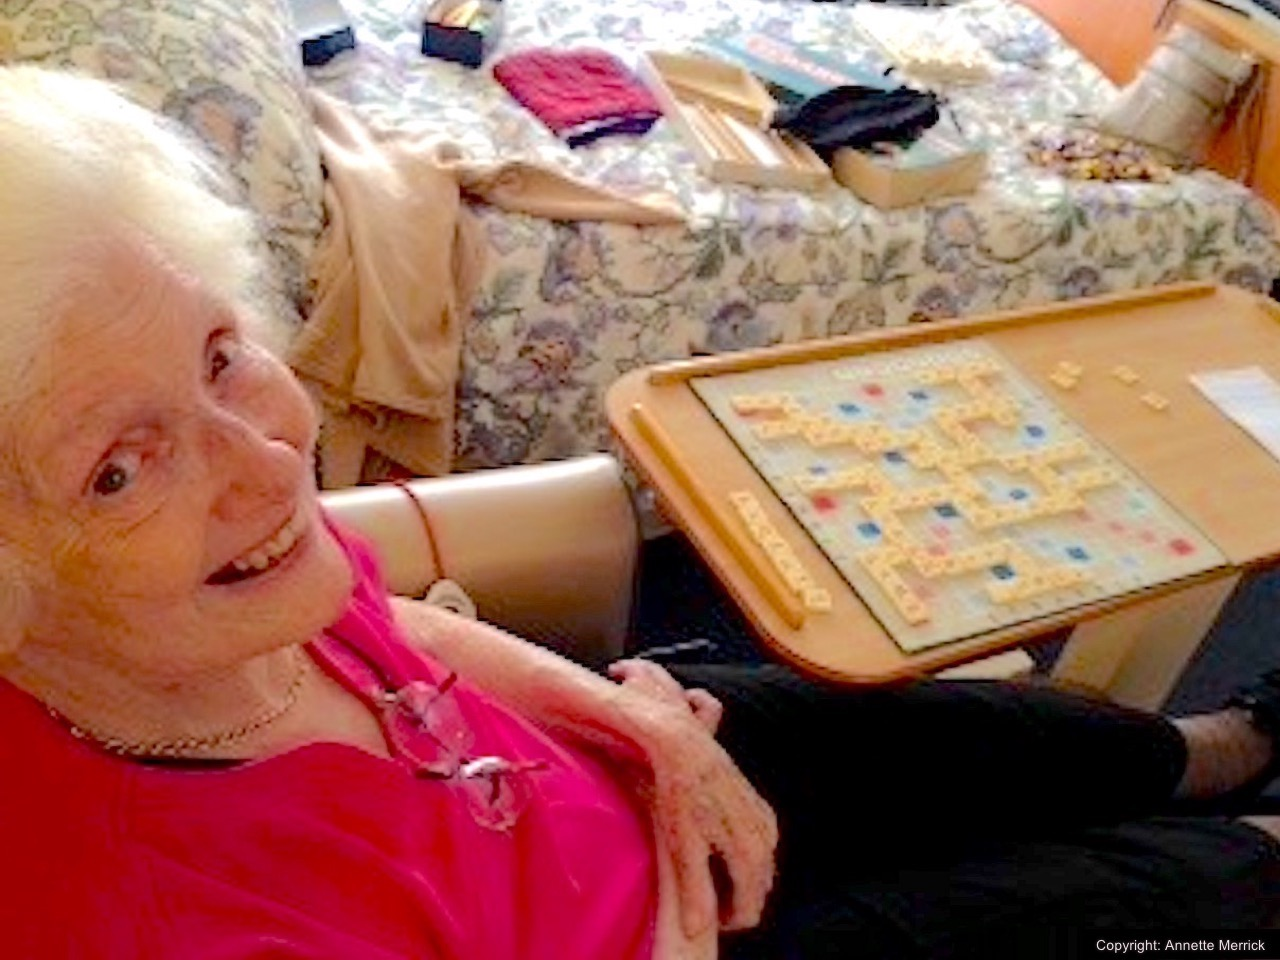 Smiling woman looking up at camera with a game of Scrabble next to her